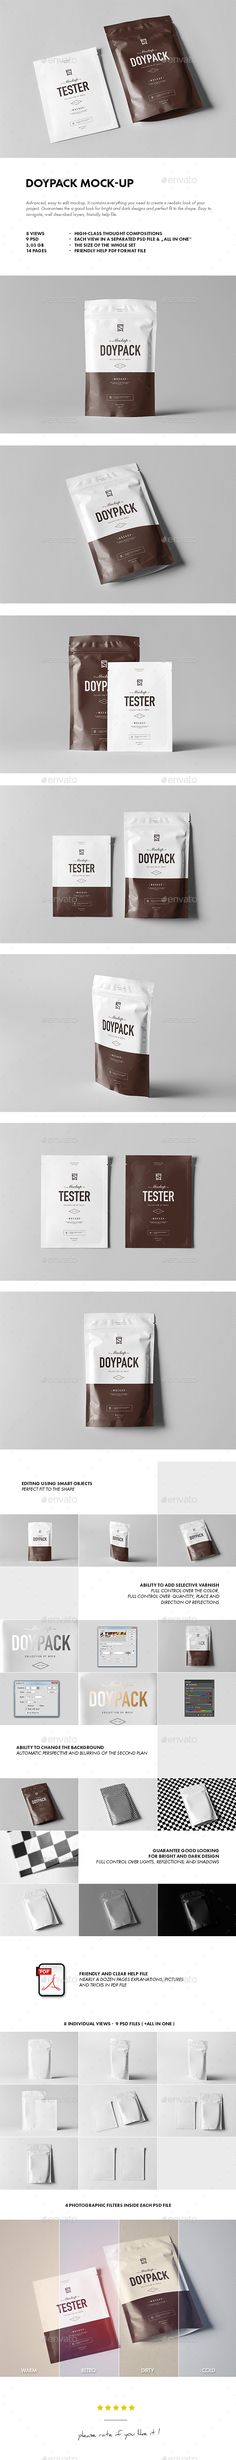 Doypack Mockup — Photoshop PSD #food drink bag seal #stand up pouches • Download ➝ https://graphicriver.net/item/doypack-mockup/19283328?ref=pxcr